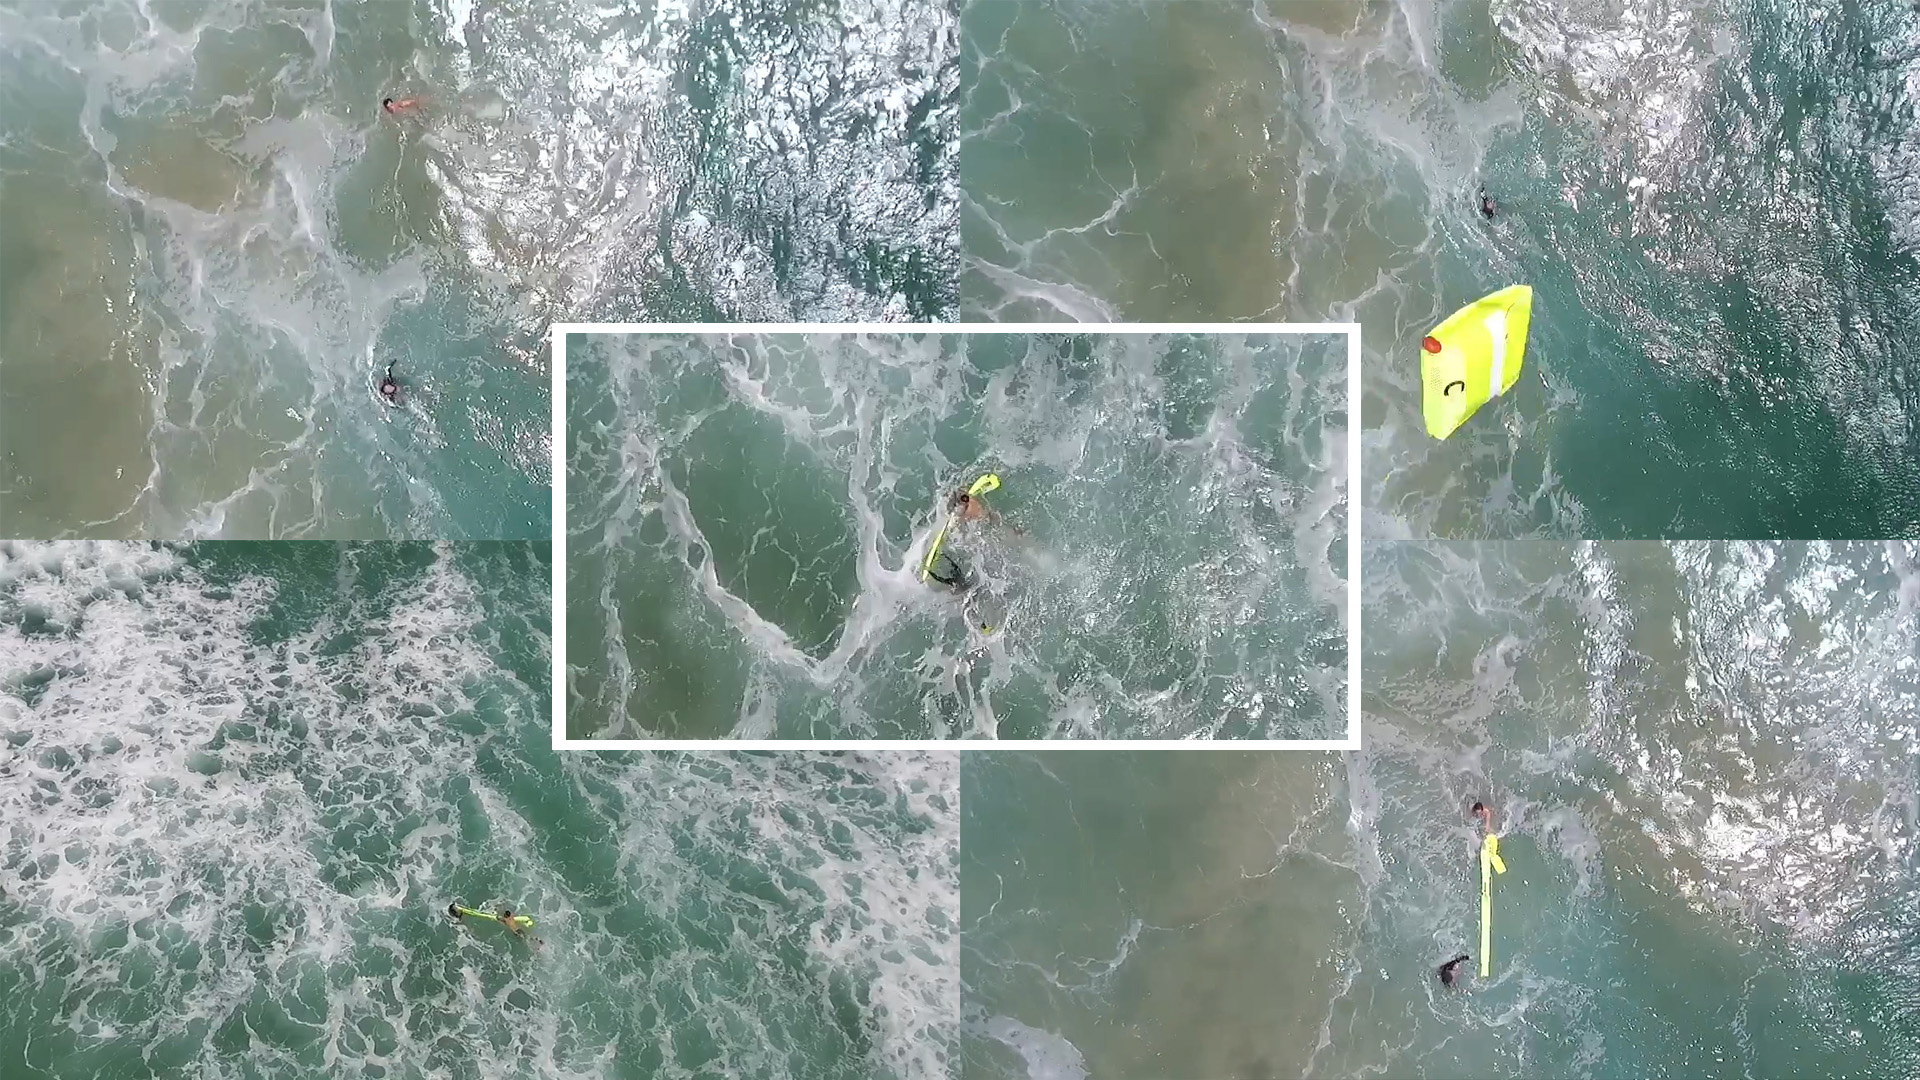 This sequence of images from a video taken Jan. 18 by the Westpac Little Ripper documents the rescue of two teens who were caught in dangerous surf far from shore, and assisted by a floatation device dropped from the drone. Photos from video courtesy of Westpac Little Ripper.